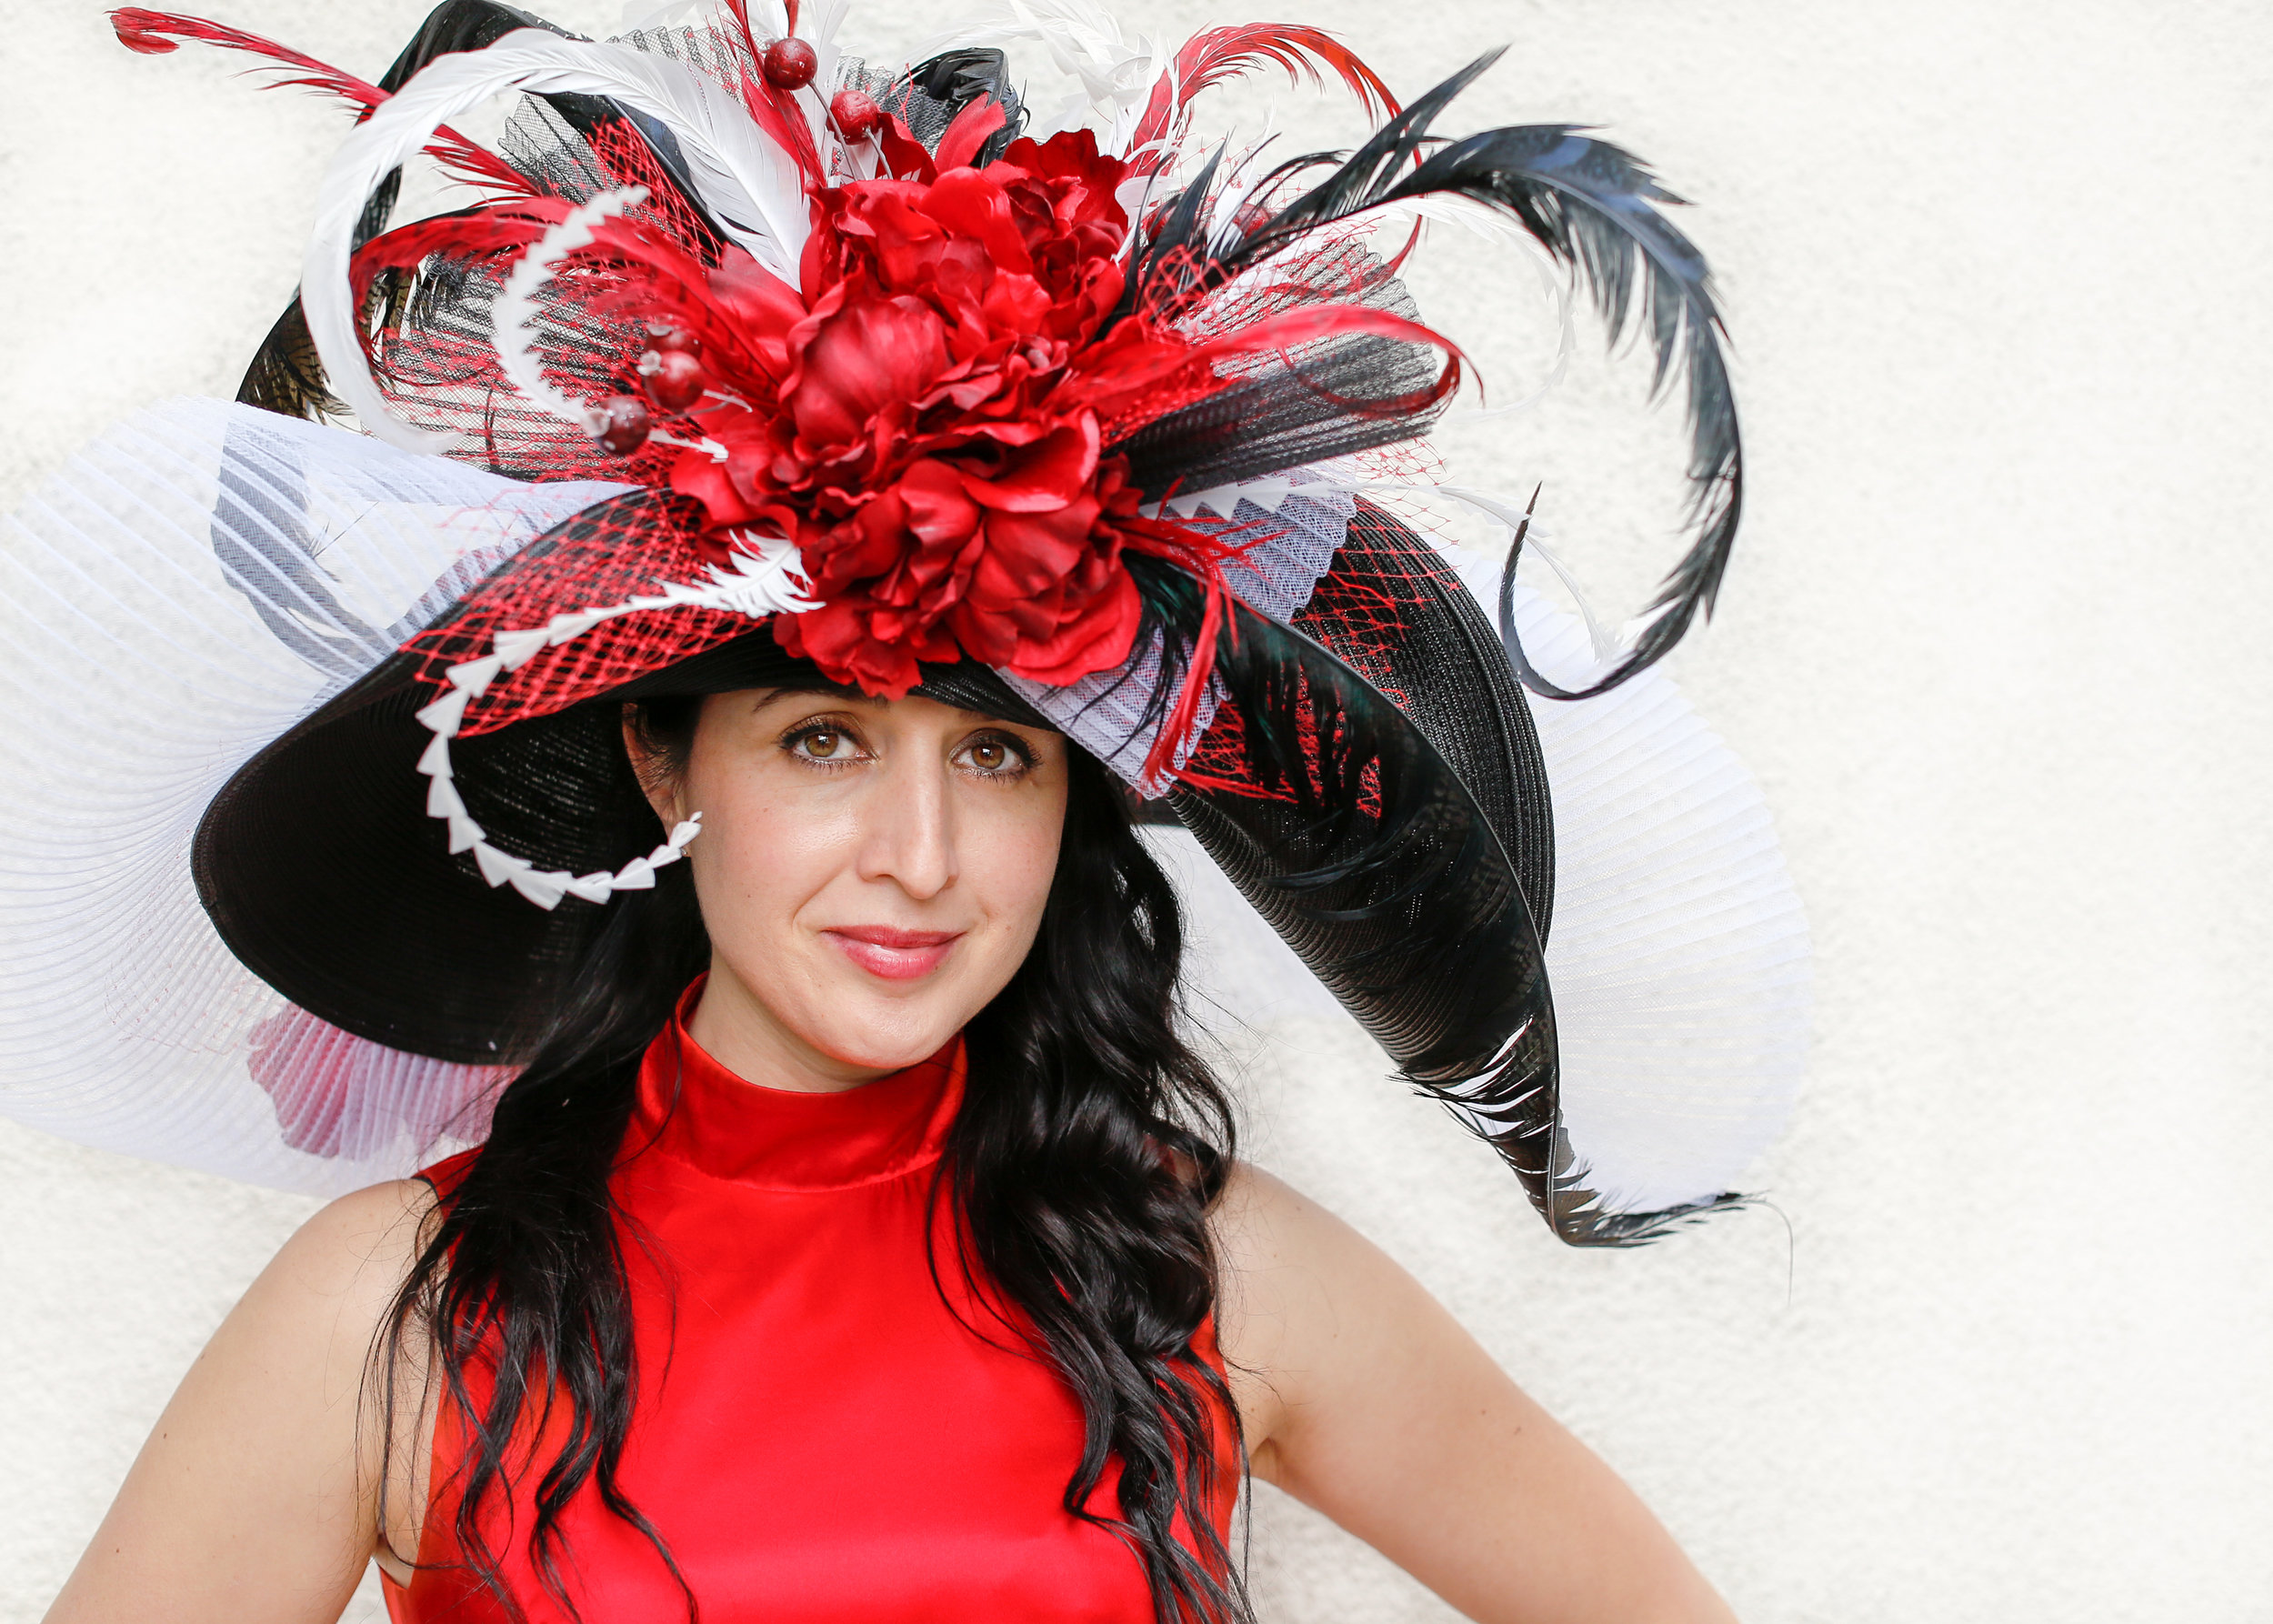 """High Fashion - We partnered with @vintagetreasuresarcadia to photograph some beautiful vintage hats and dresses! It's awesome when you take an """"ordinary mom"""" and transform her into a glamorous Diva with just a hat!"""